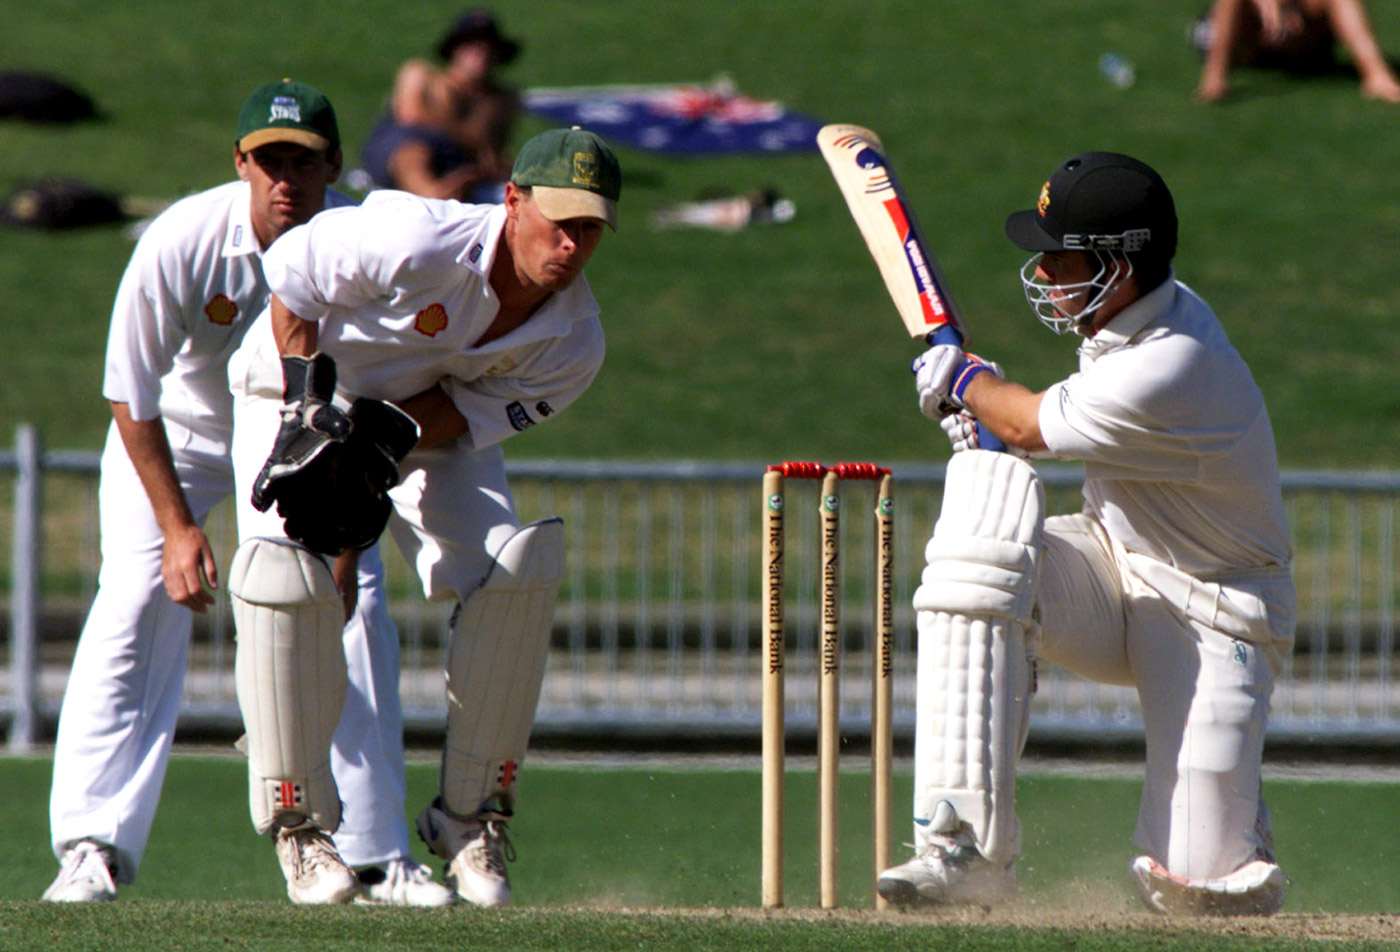 Justin Langer used his dominant top hand to caress the sweep shot towards fine leg rather than play it hard in front of square